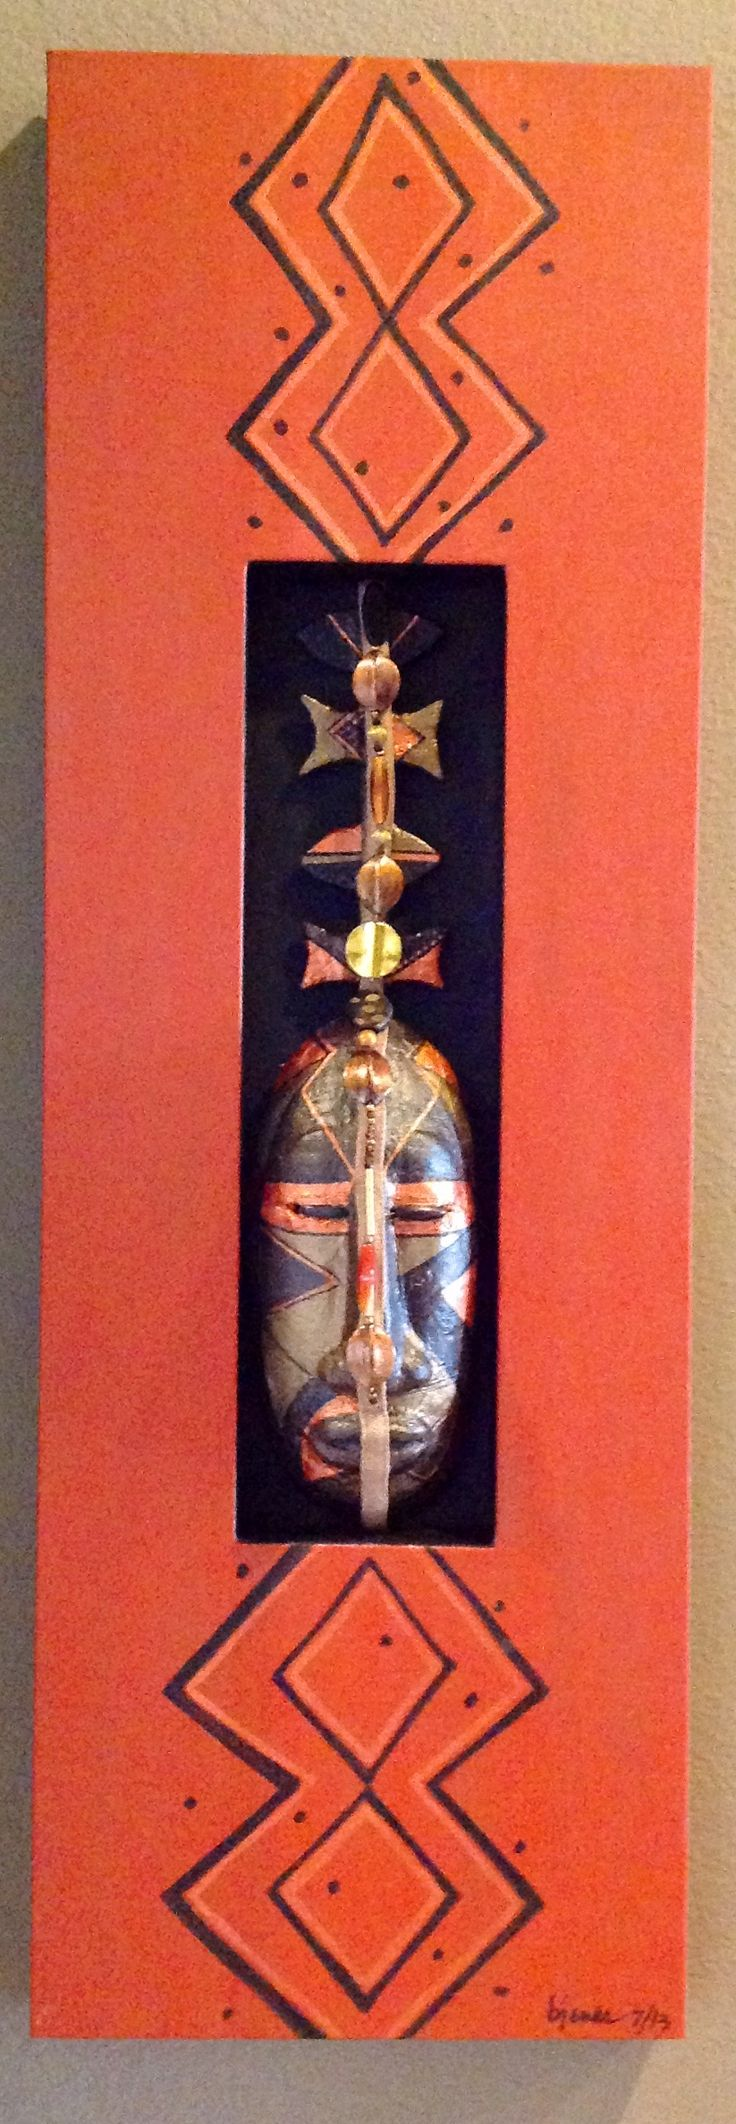 Shadow box canvas with inset sculpted Congo mask accented with metallic paint and beads.